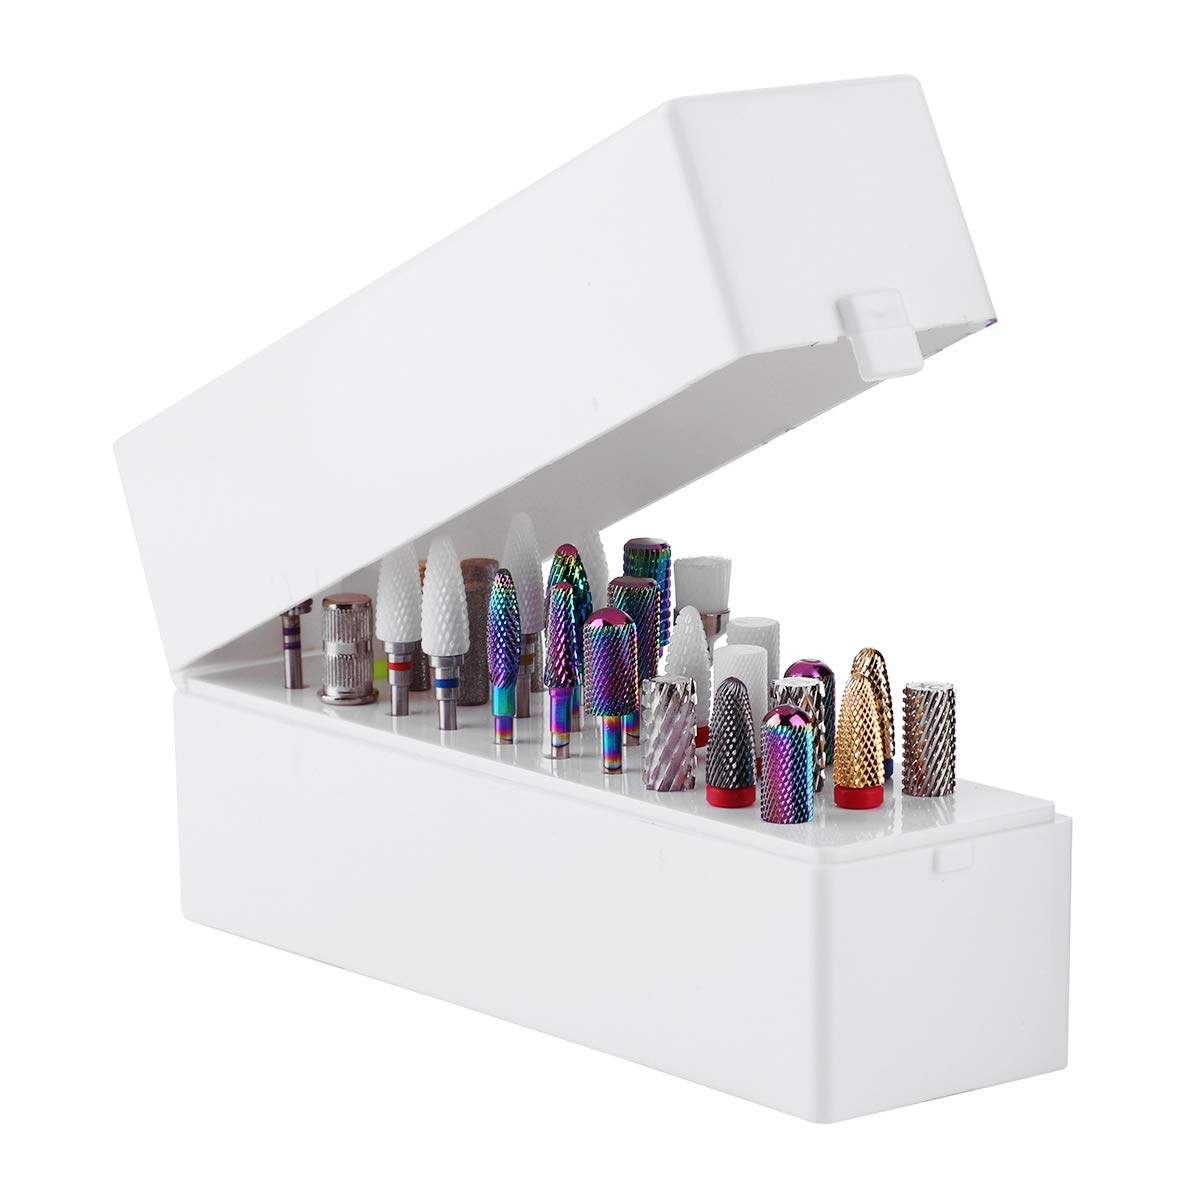 Makartt Nail Drill Bits Holder Dustproof Stand Displayer Organizer Container 30 Holes Manicure Tools (Not Inlcude Drill Bits) B-22: Beauty